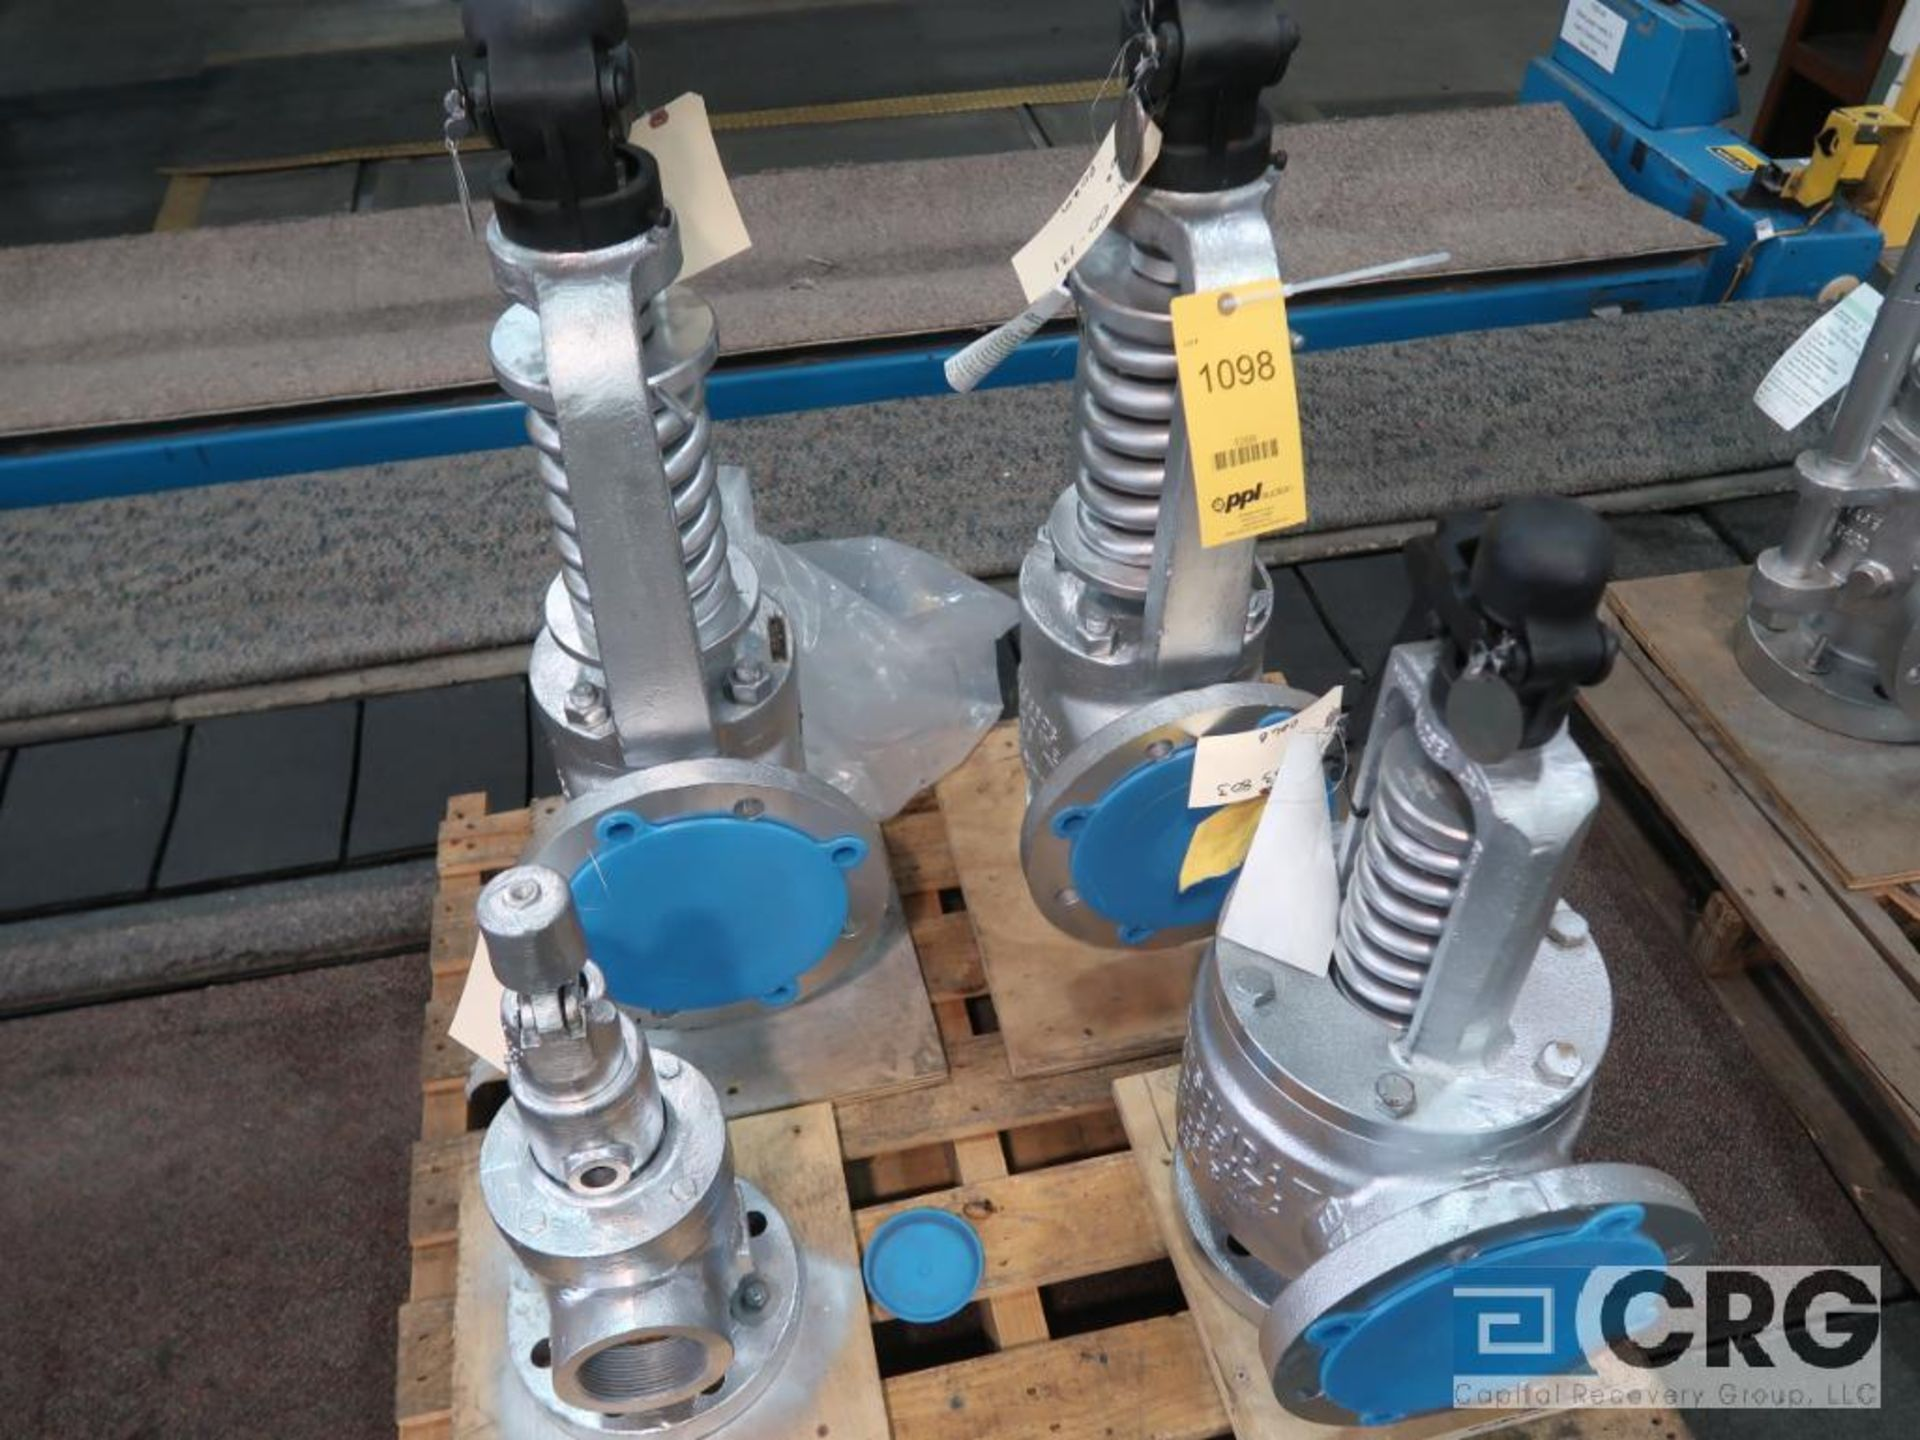 Lot of (4) safety relief valves, (1) 4 x 6, (2) 6 in., and (1) 3 in. (Finish Building)